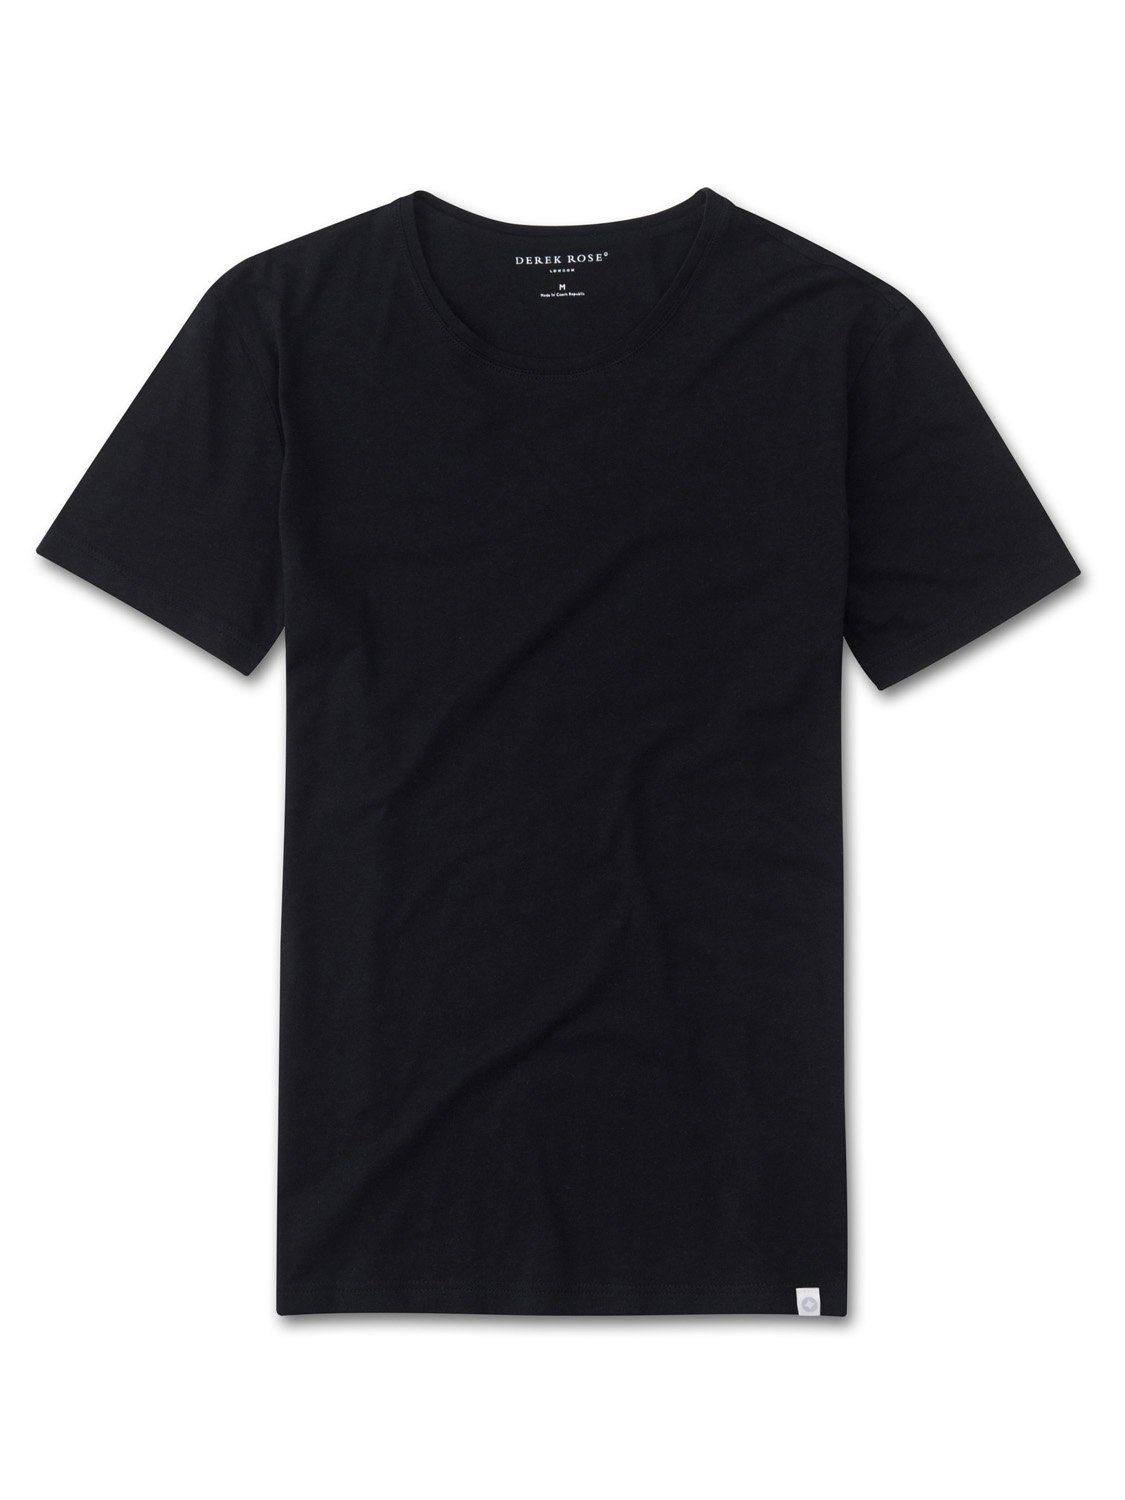 Men's Short Sleeve T-Shirt Riley Pima Cotton Black